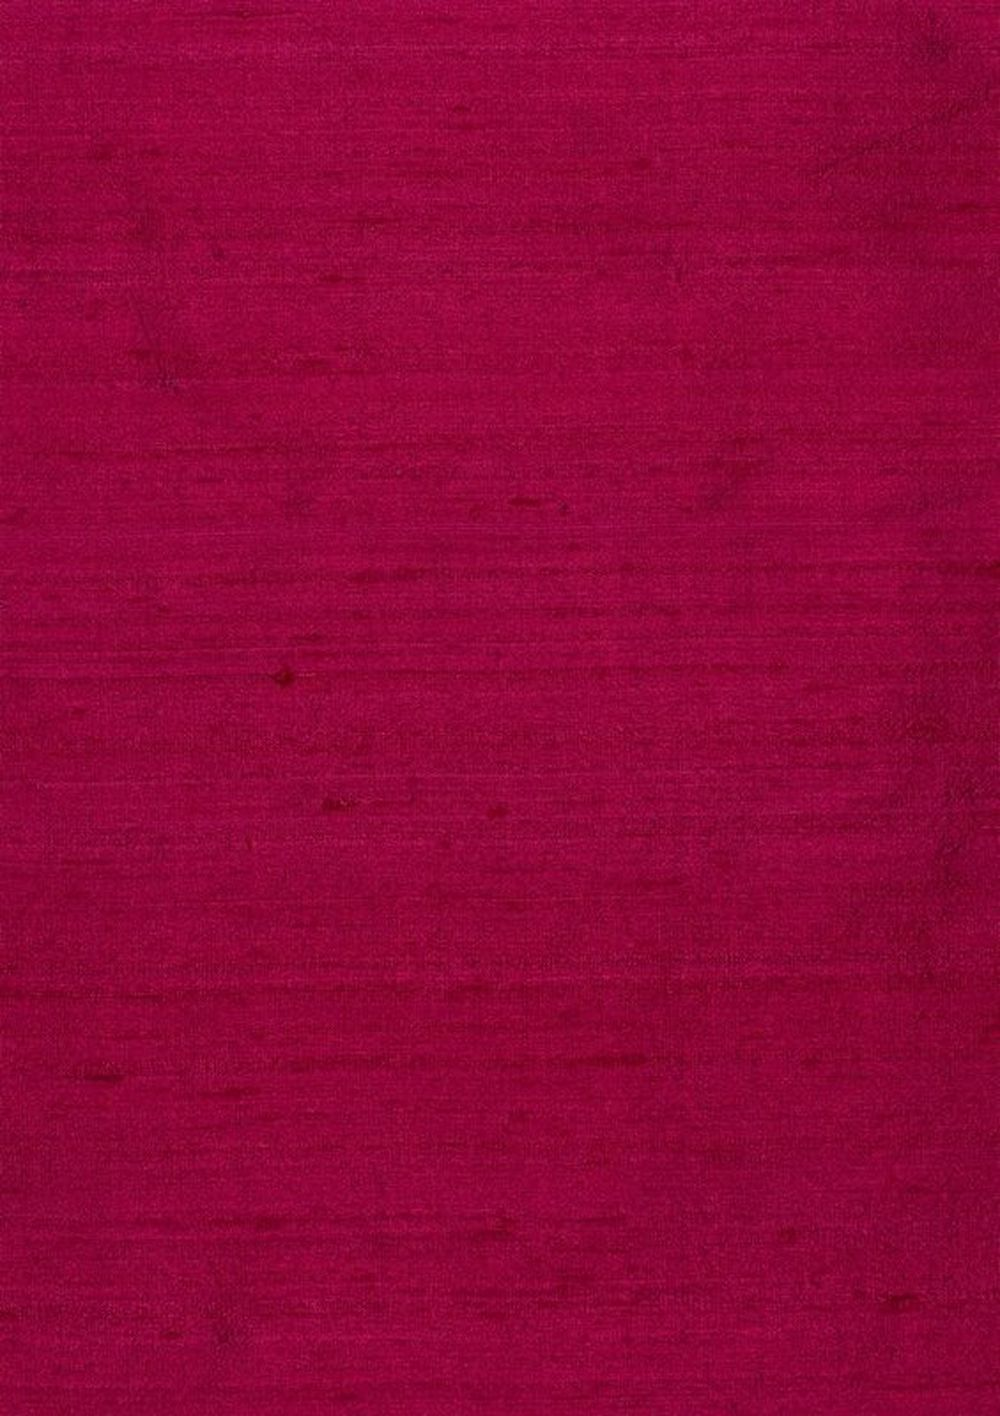 Photo of the fabric Luxury Grenadine-194 swatch by James Dunlop. Use for Curtains. Style of Plain